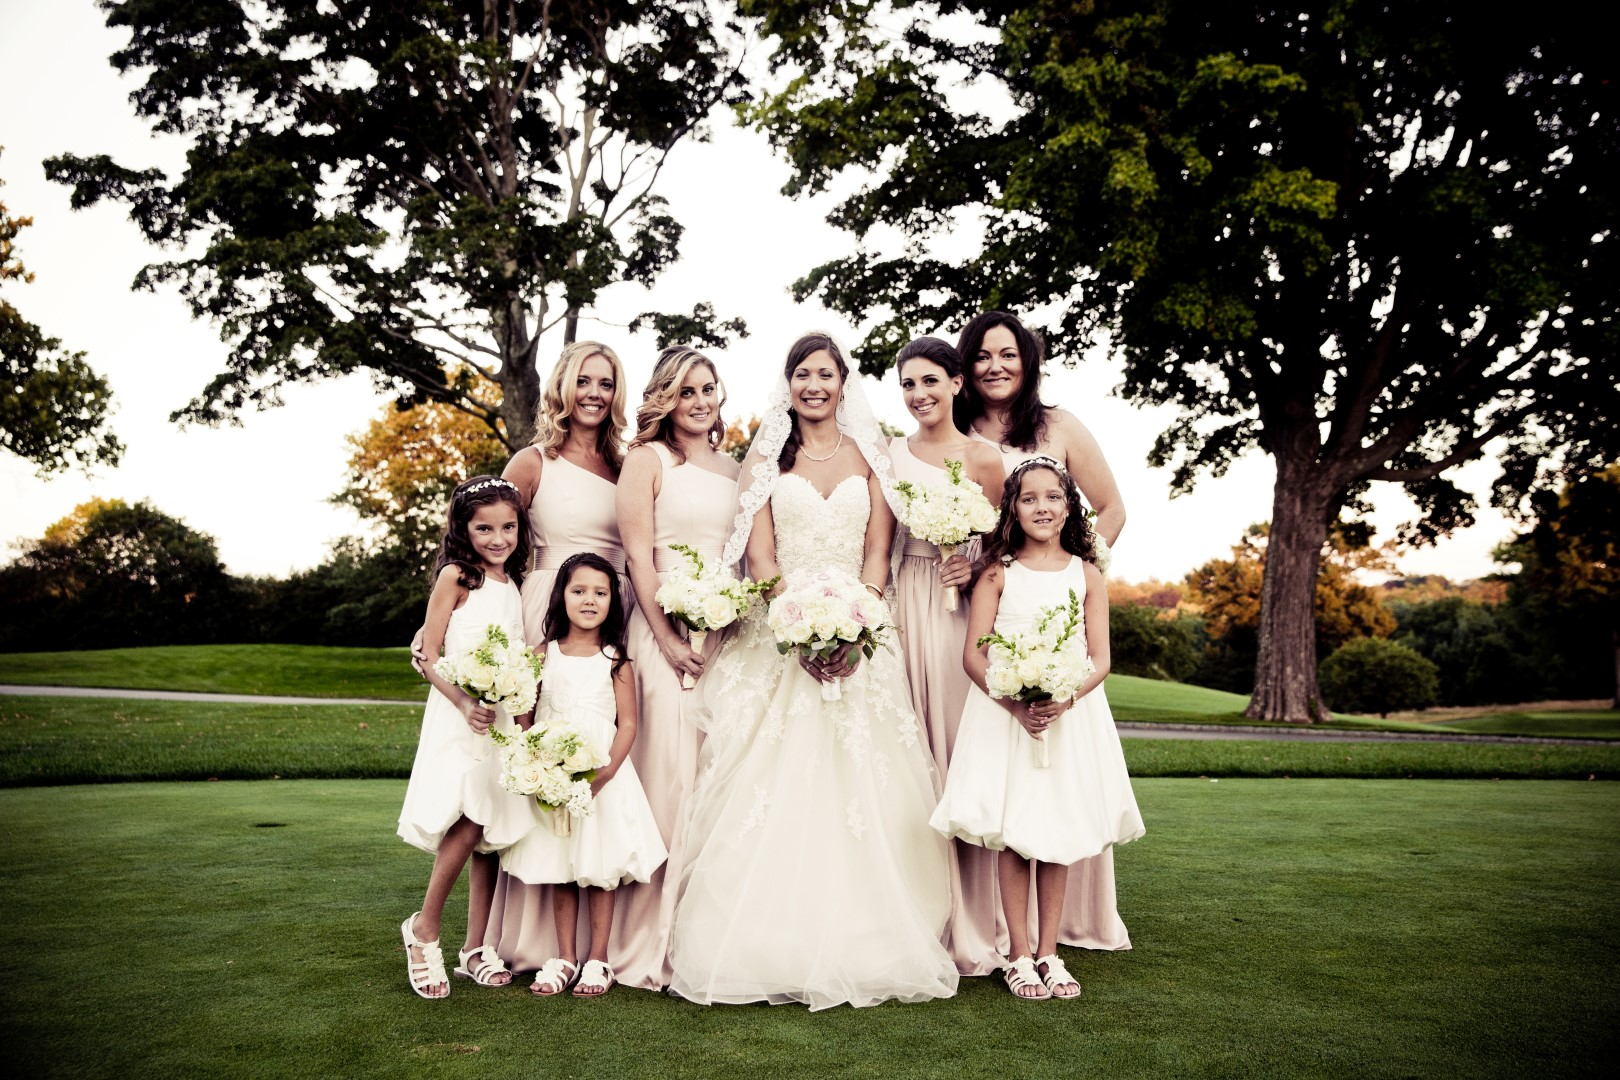 How Many Bridesmaids Should I Have?